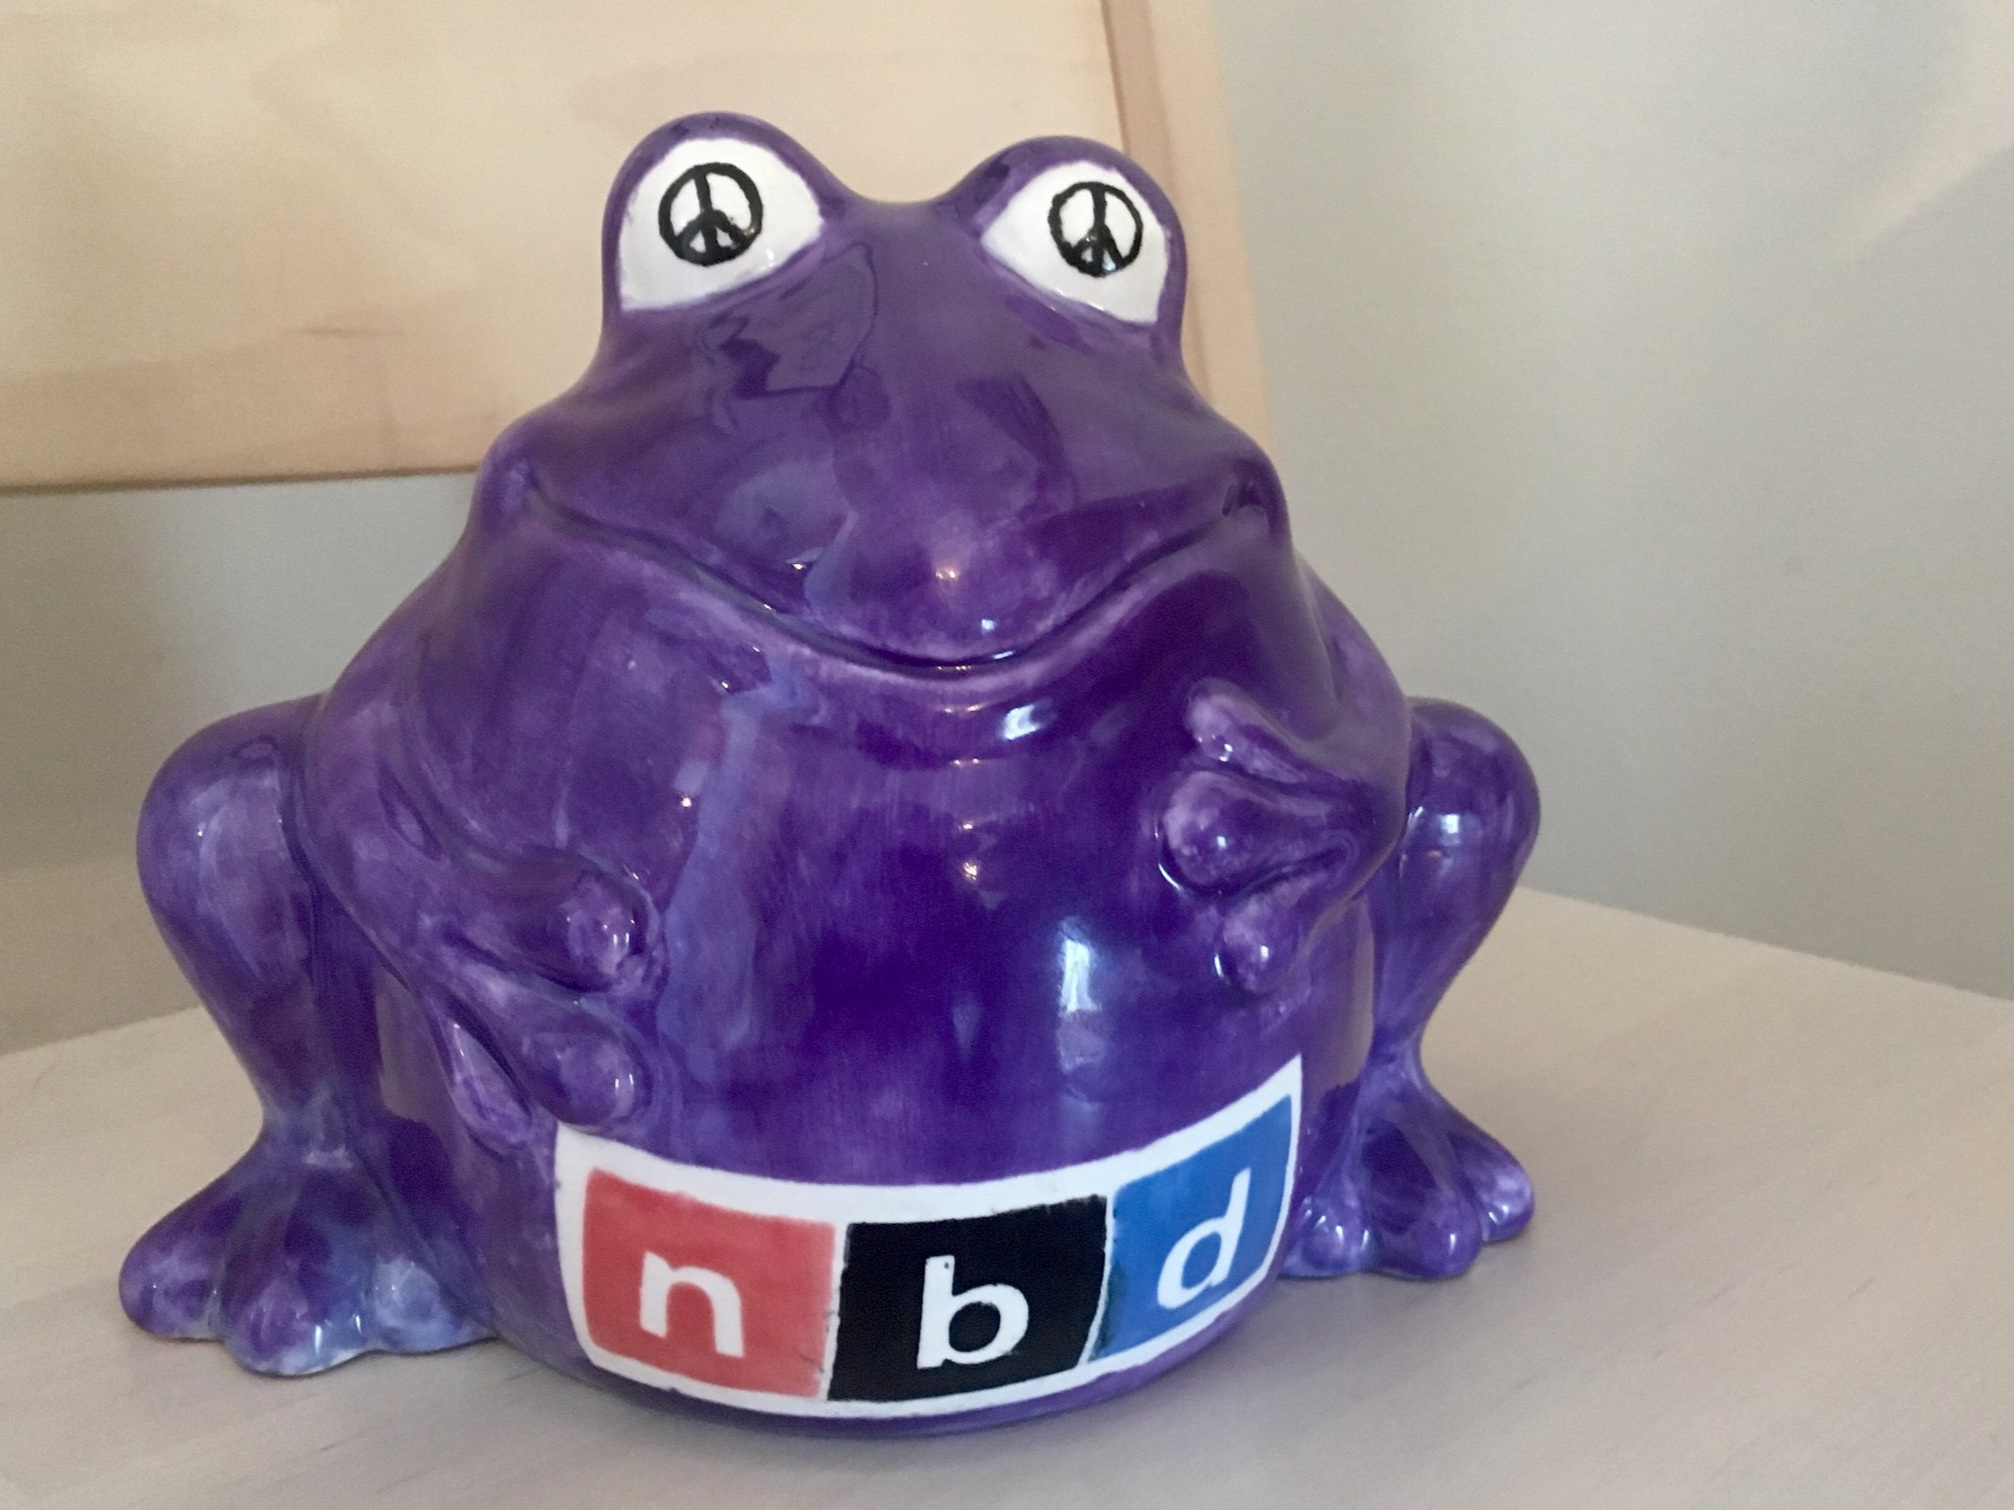 THANK YOU - Not only will your donations support the creation of Craigslist Curio, but you'll also be providing a hungry froggy bank with a well deserved meal.